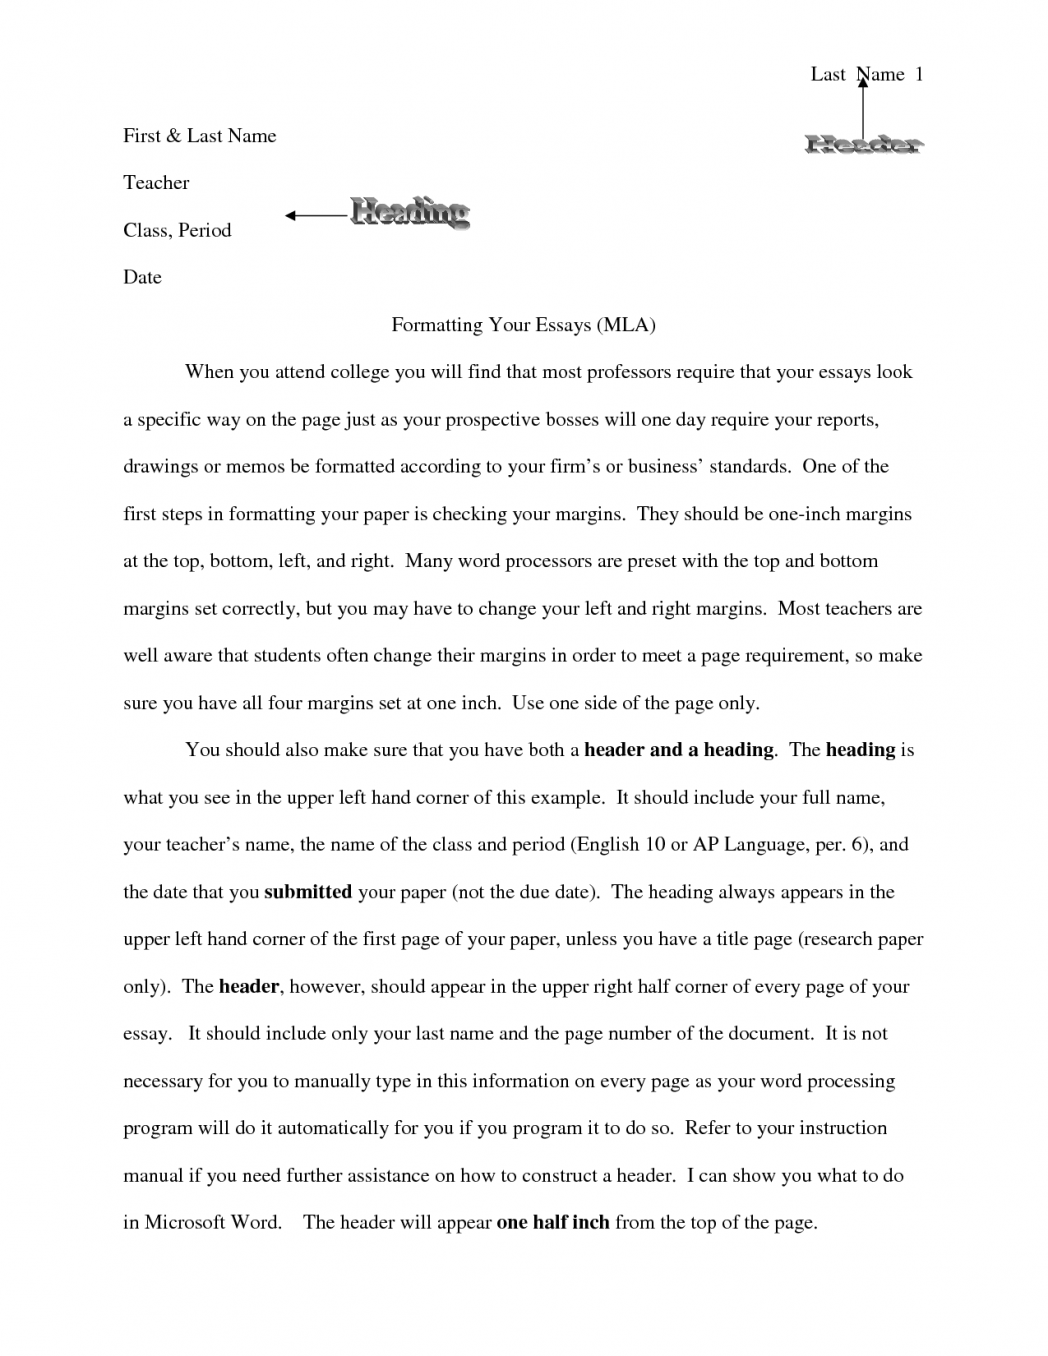 010 College Essay Header Example Heading Format Mersn Proforum Co Ideas Collection Formatting Templates Zigy Perfe Admission Application Archaicawful Margins Full